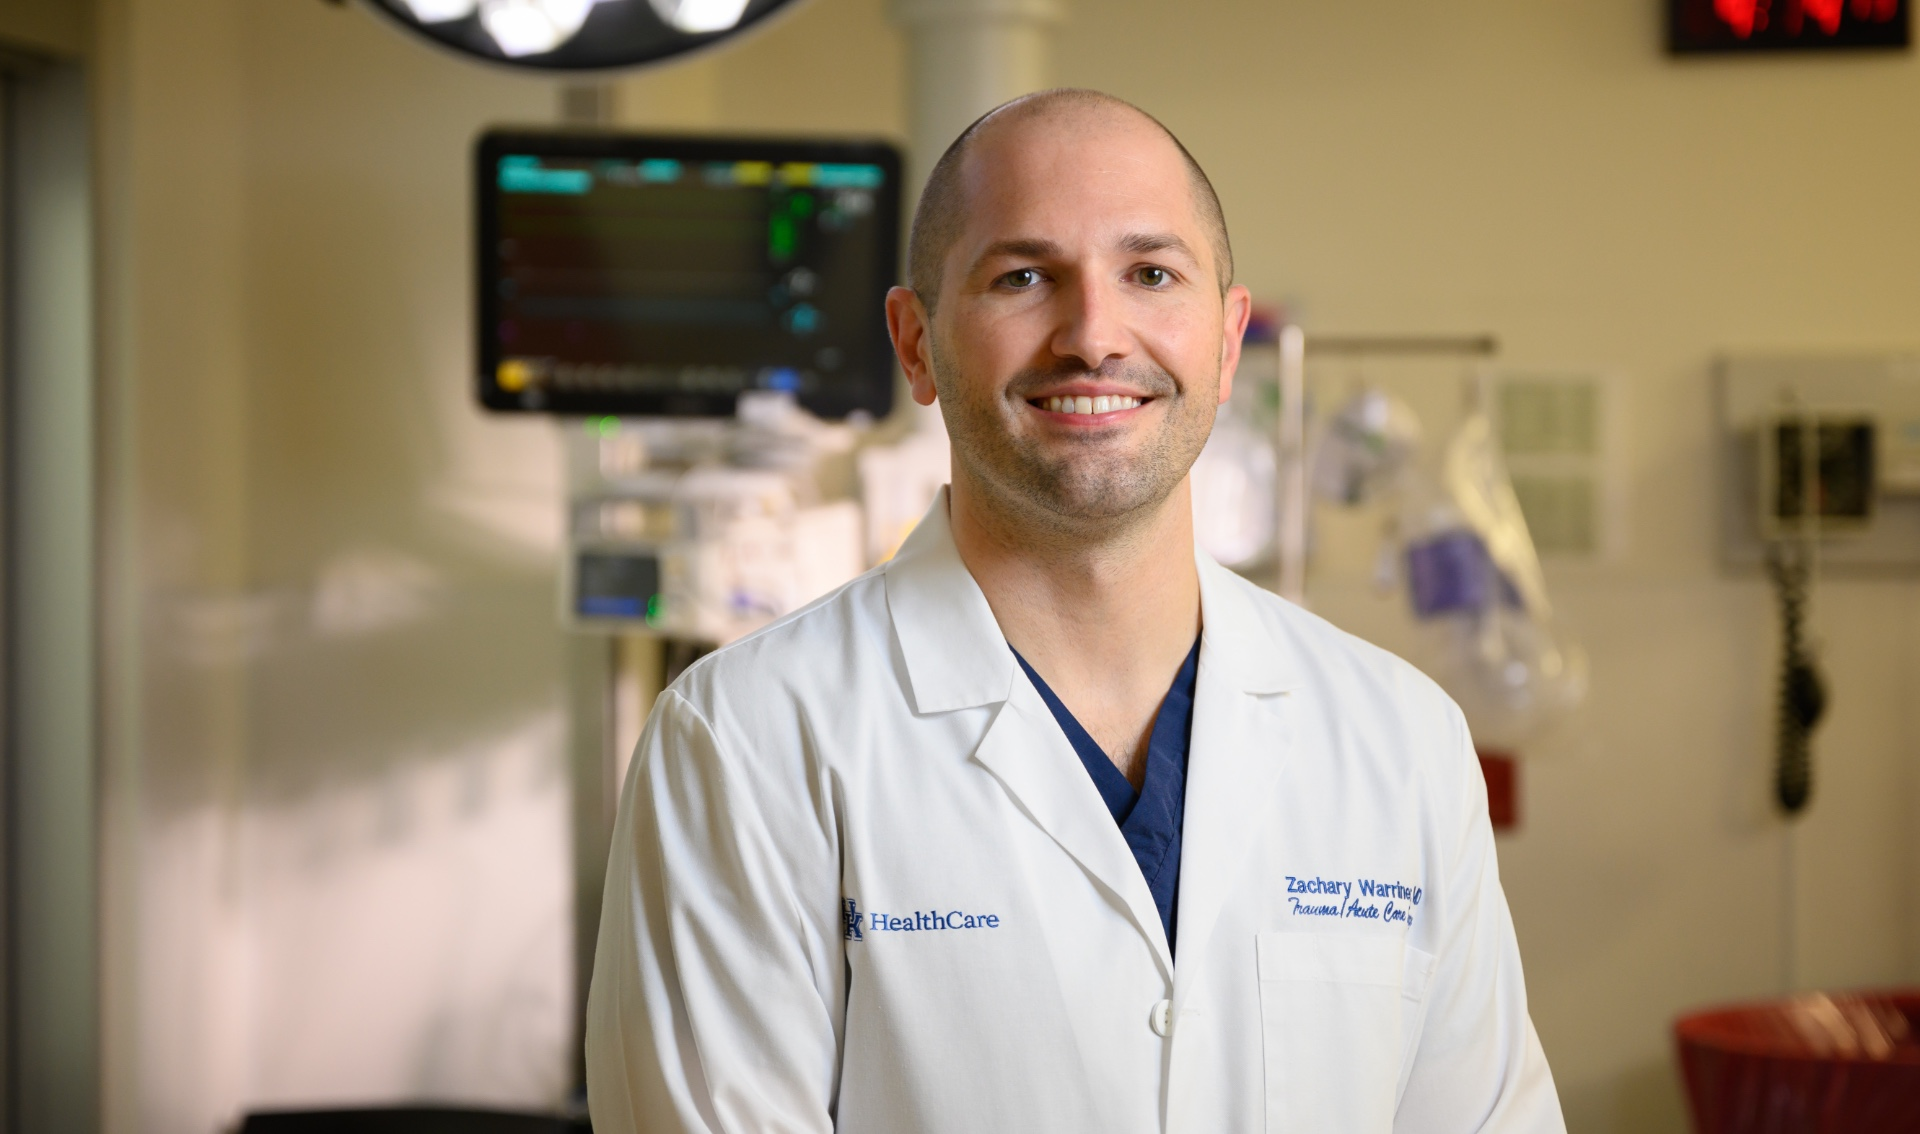 Dr. Zach Warriner, a white adult man with a shaved head, smiles while standing in front of medical equipment. He is wearing a white lab coat with a set of blue scrubs underneath.